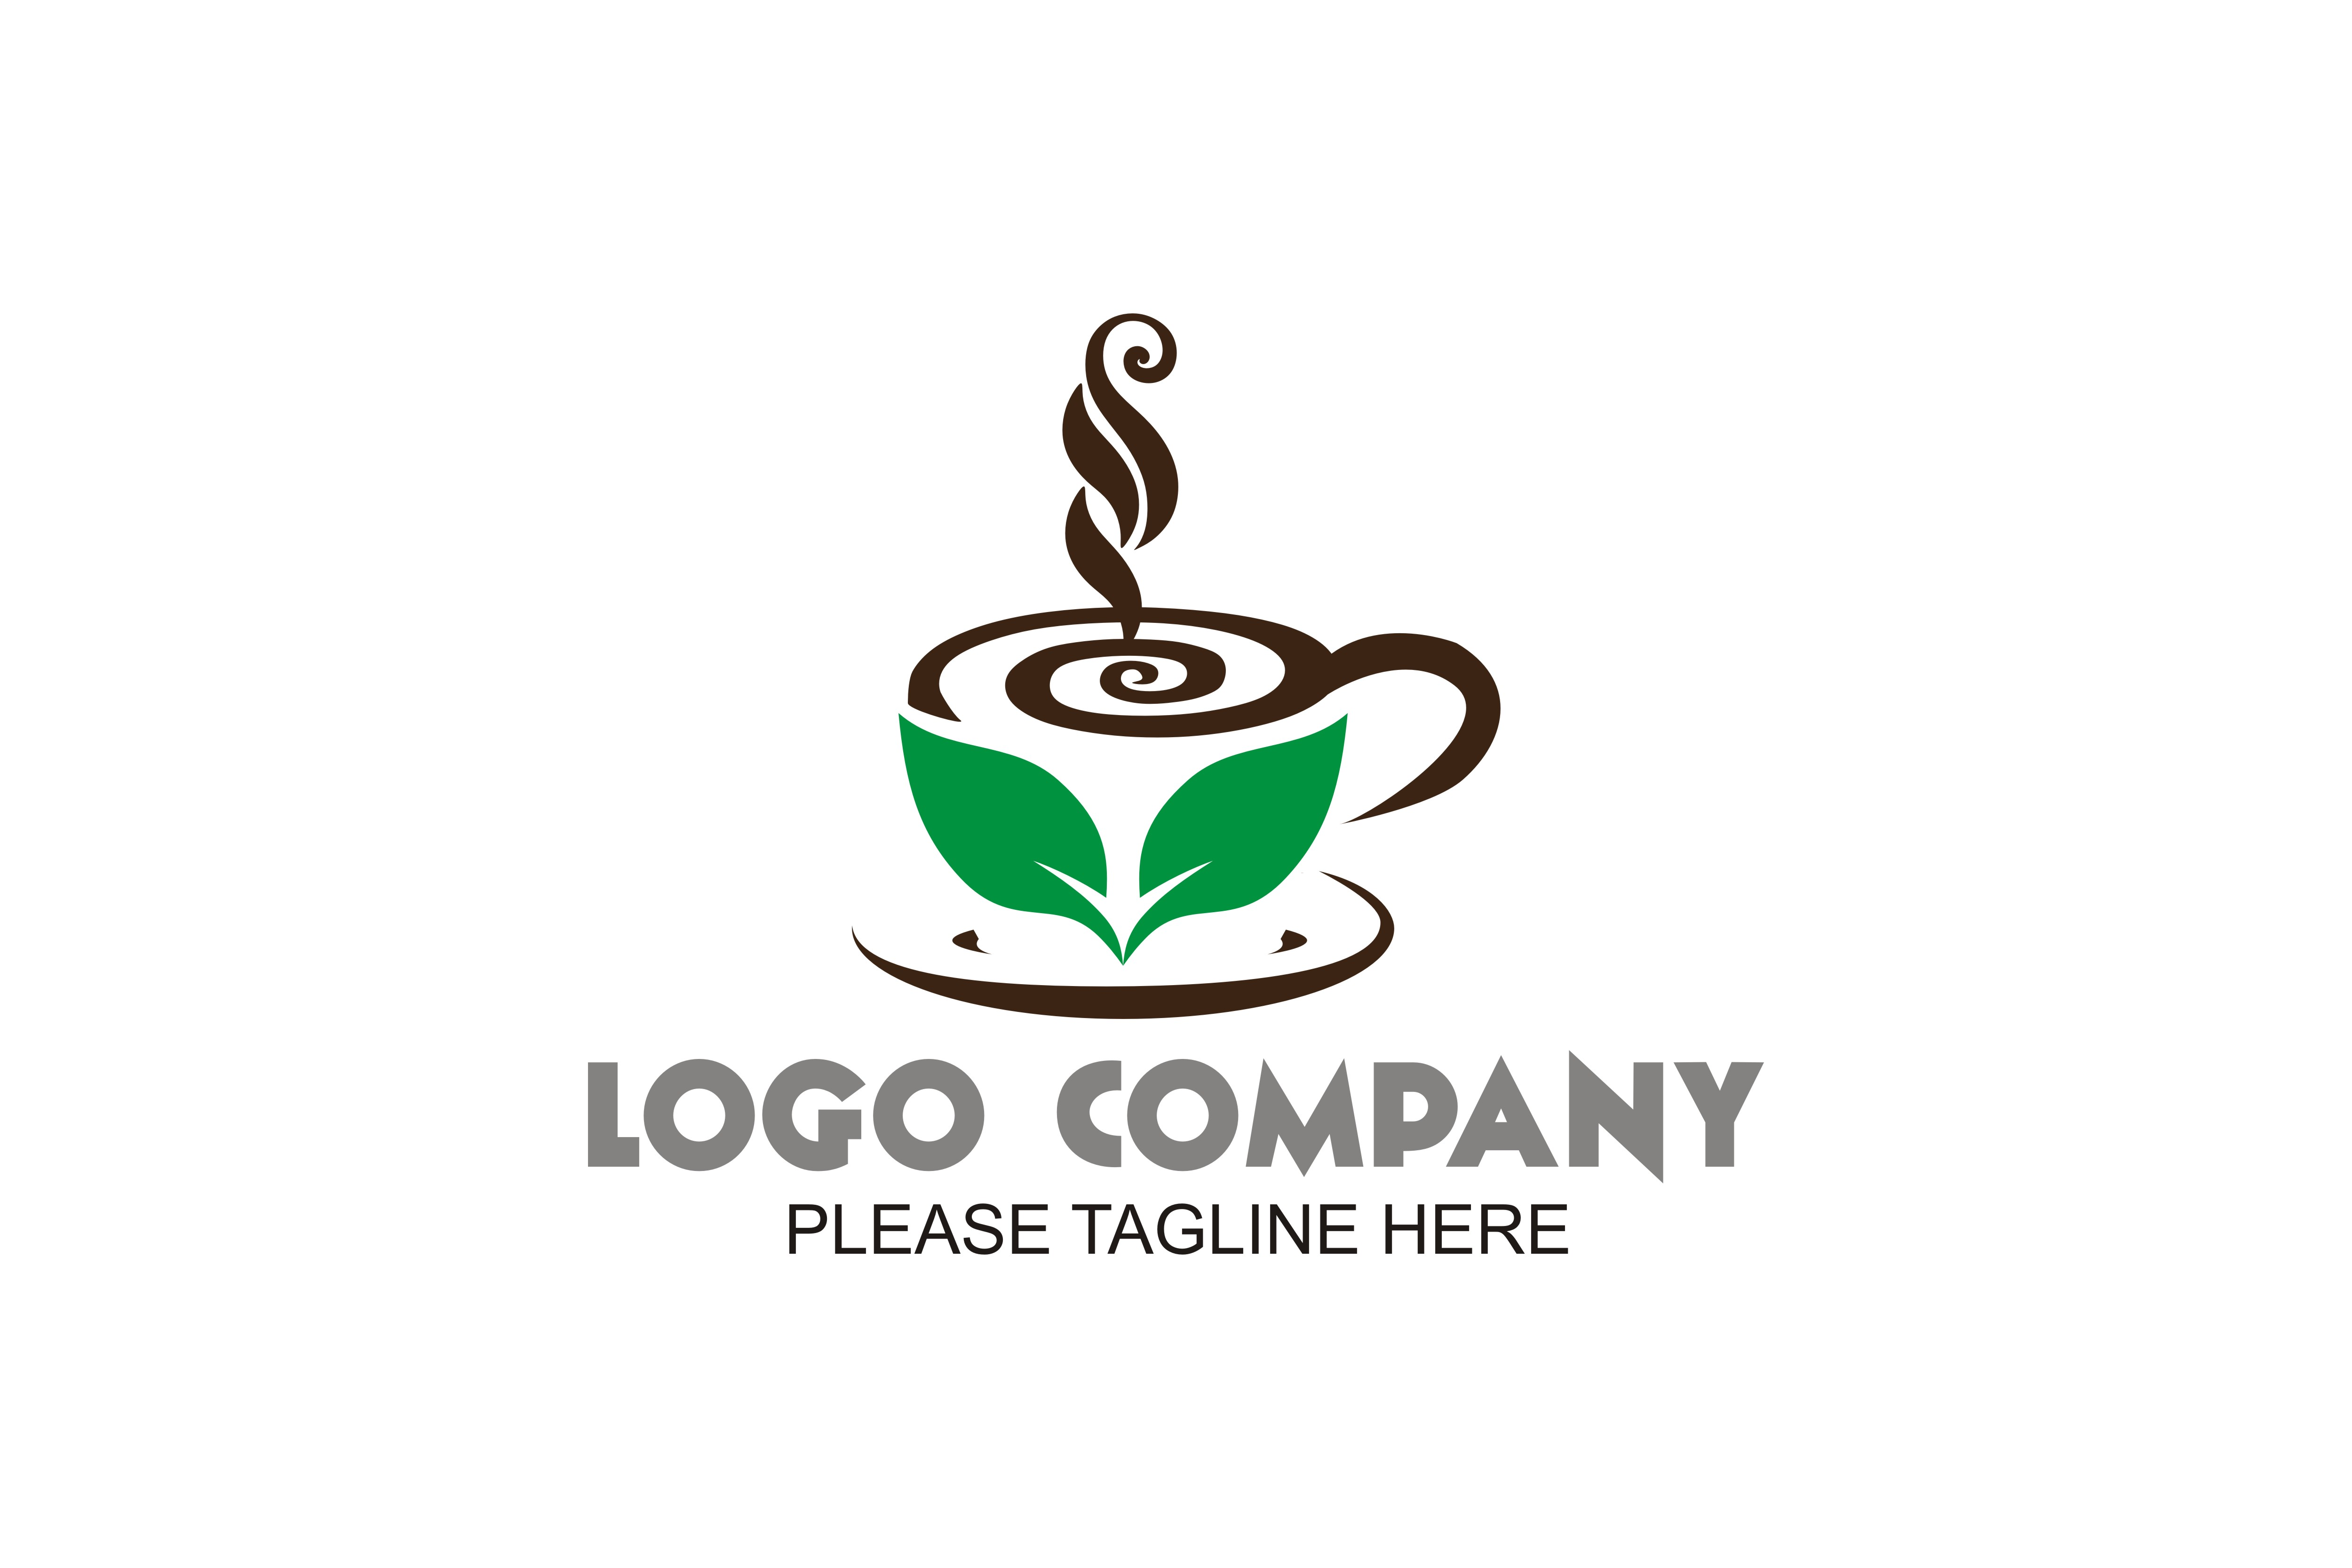 Download Free Coffee Logo Graphic By Friendesigns Creative Fabrica for Cricut Explore, Silhouette and other cutting machines.